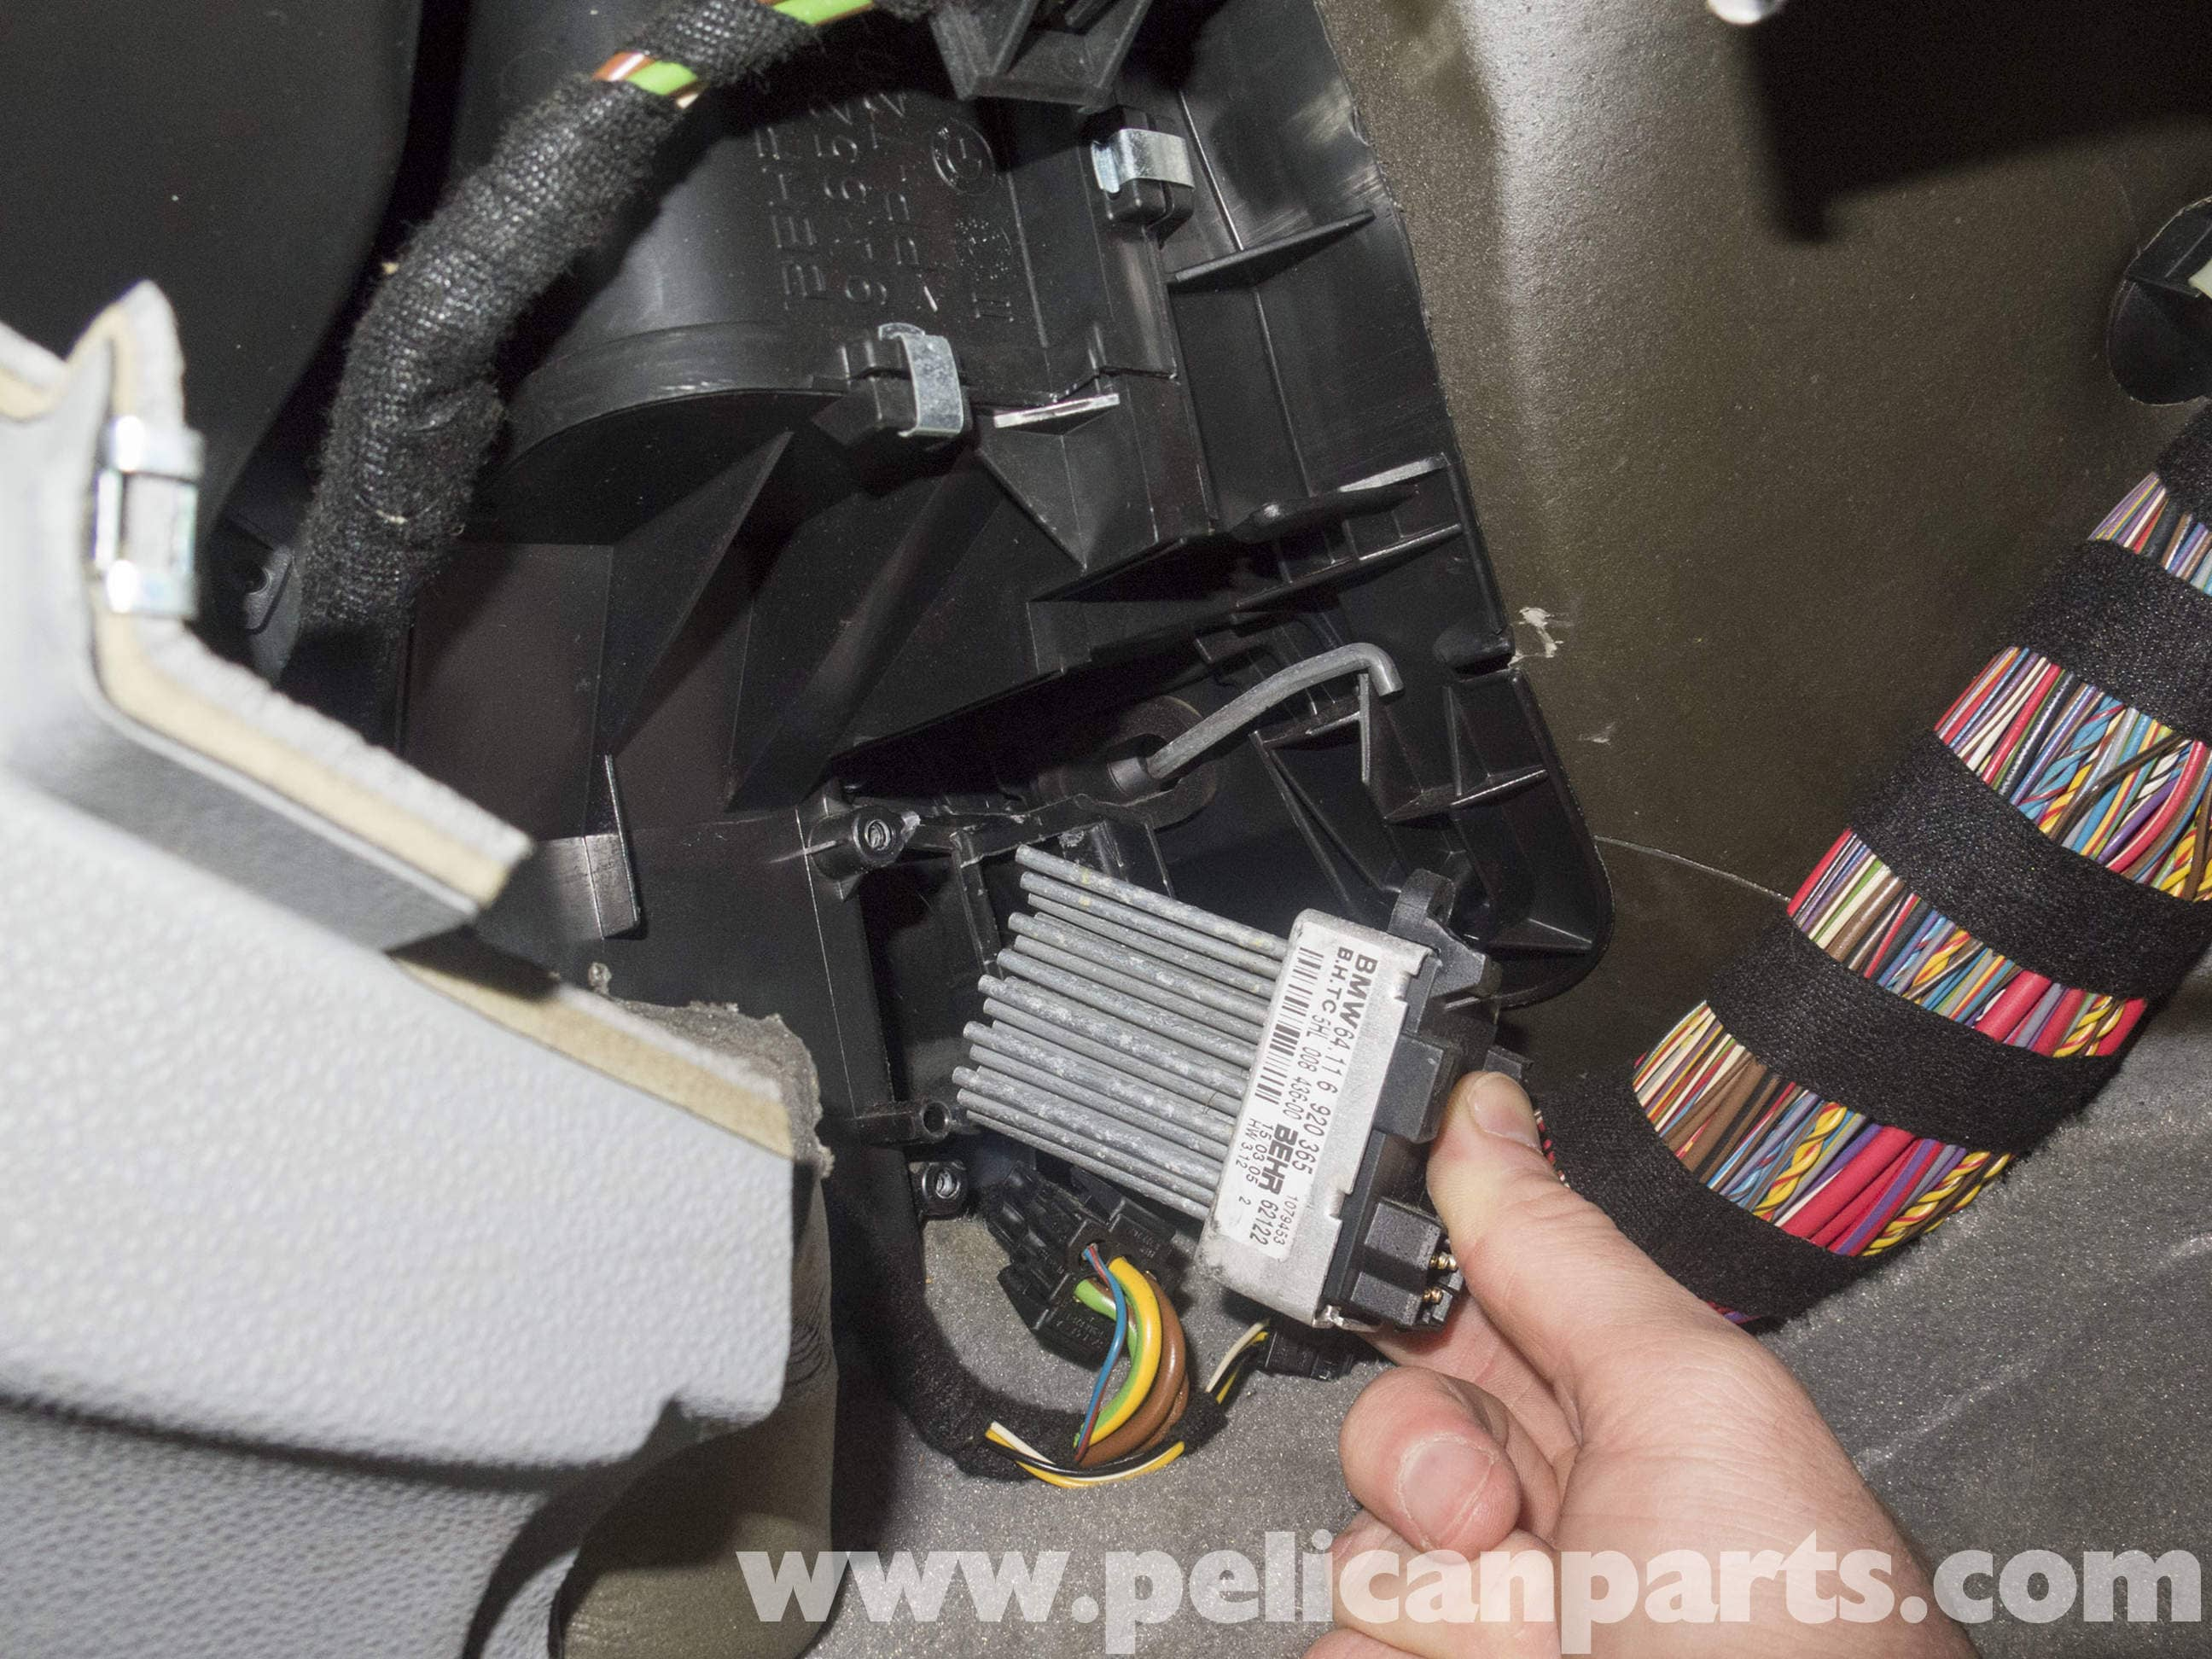 Pelican Parts Technical Article - BMW-X3 - Blower Motor